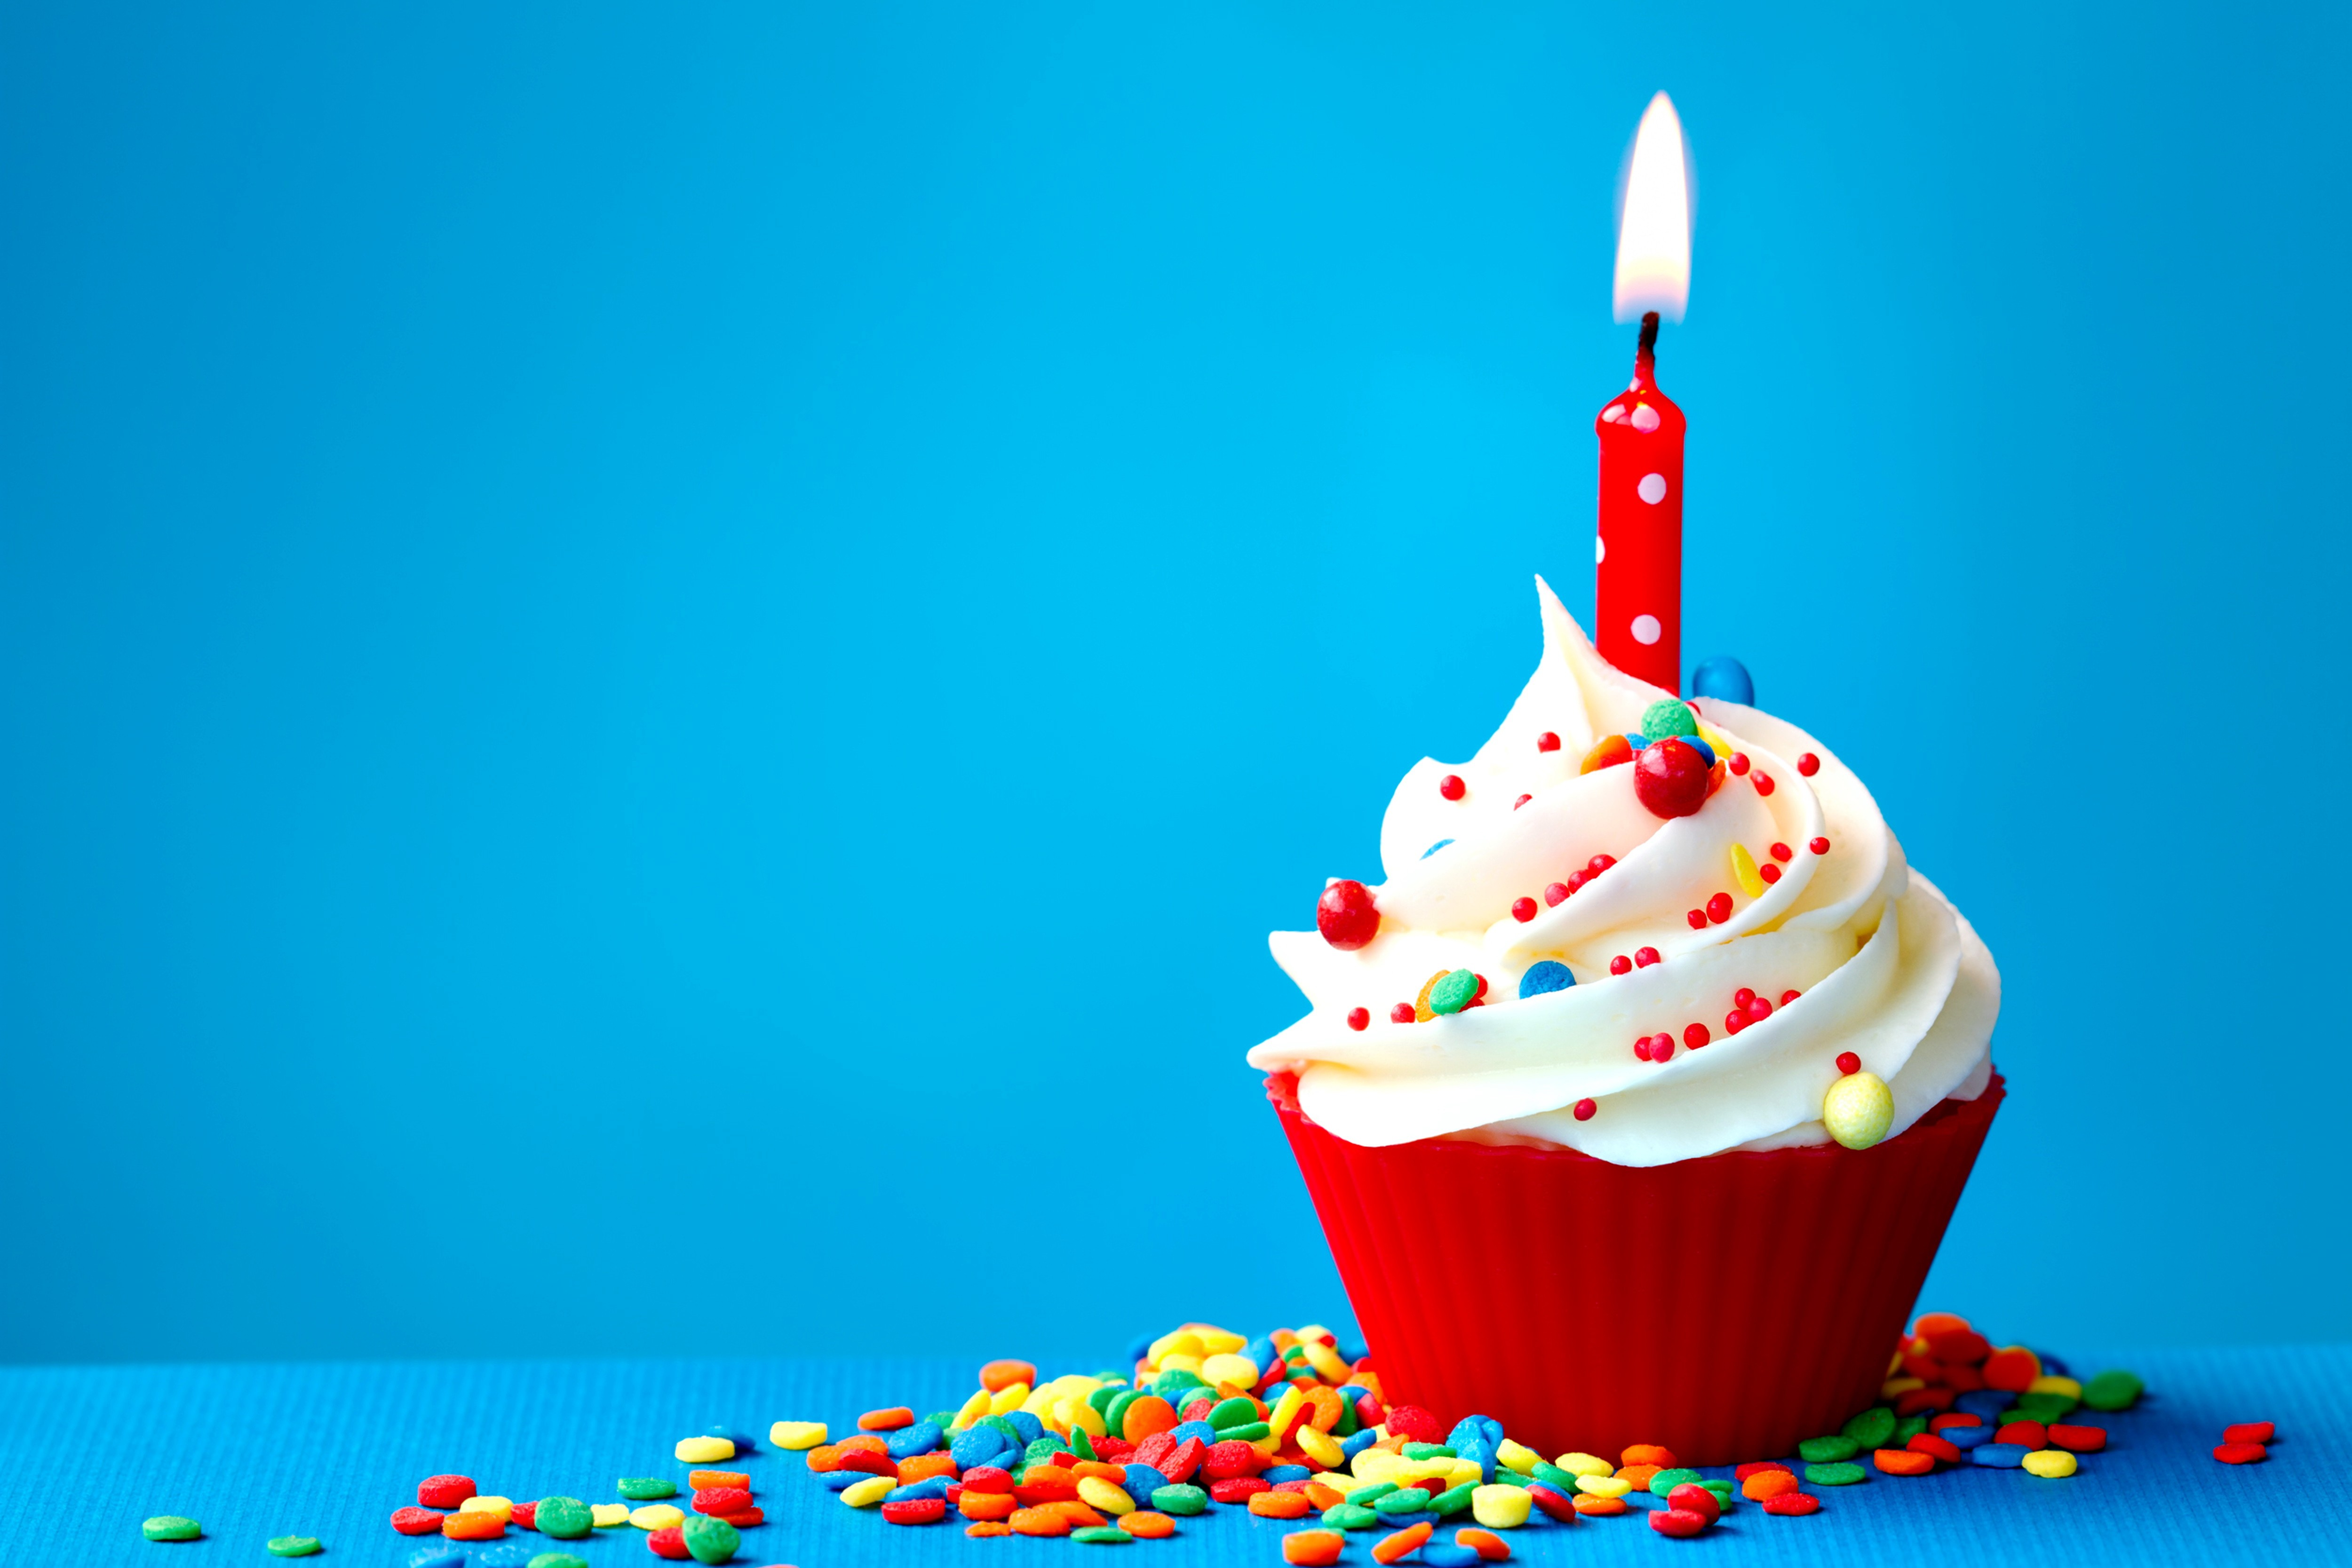 free happy birthday wallpaper for android ; 65823-amazing-happy-birthday-background-5000x3334